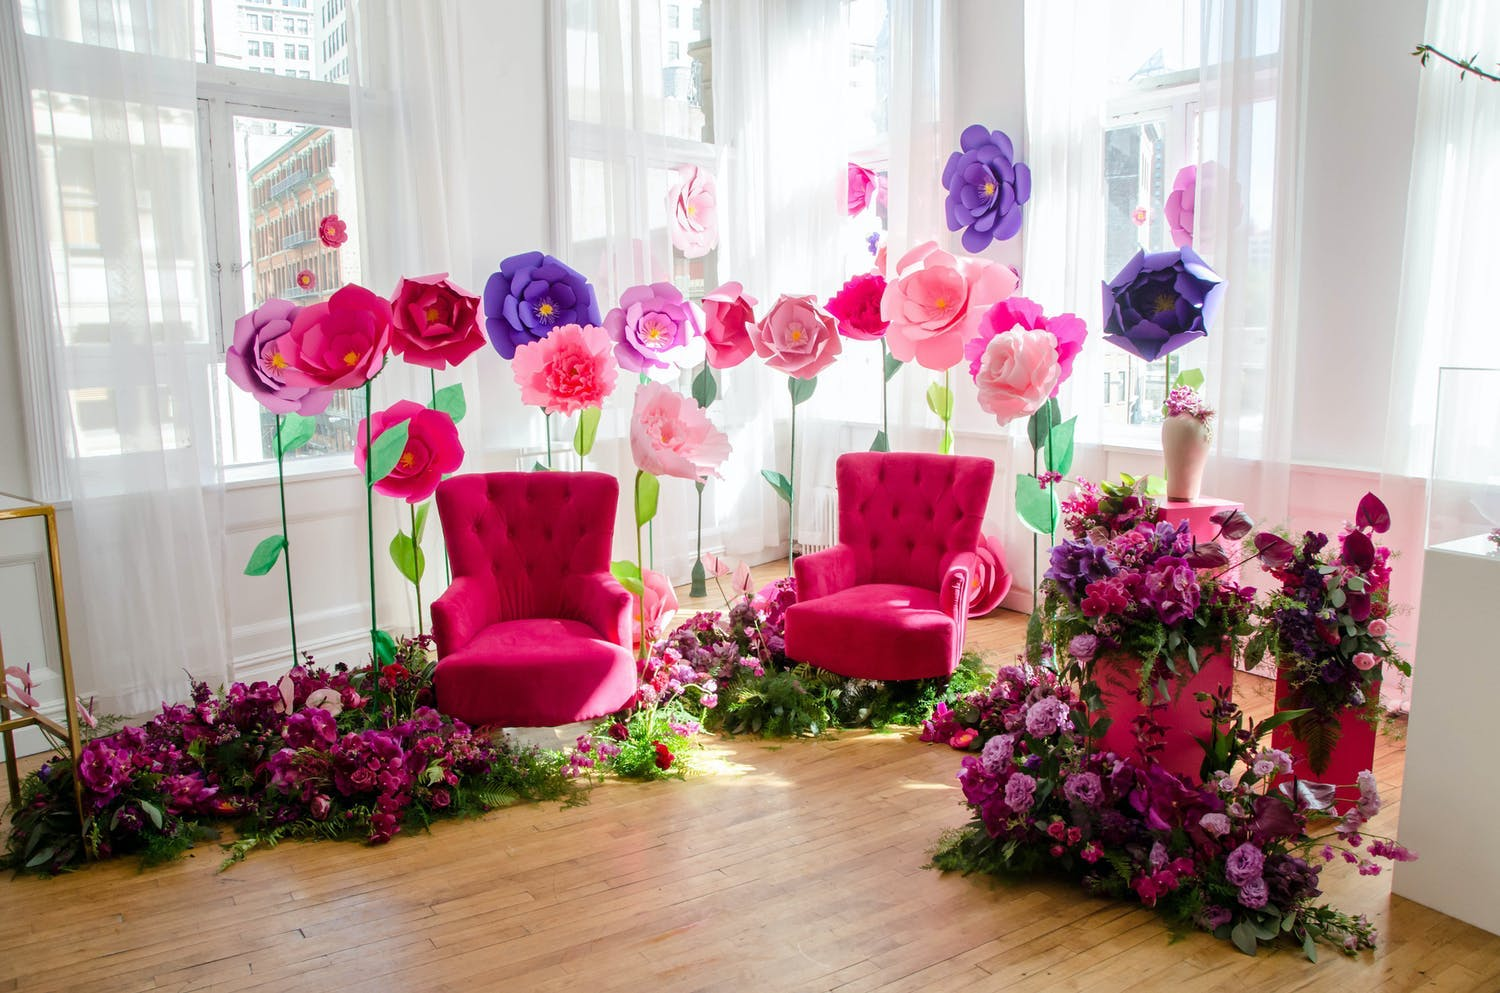 Media event with photo op area featuring two bright pink sofa chairs and giant pink, purple, and red paper flowers | PartySlate